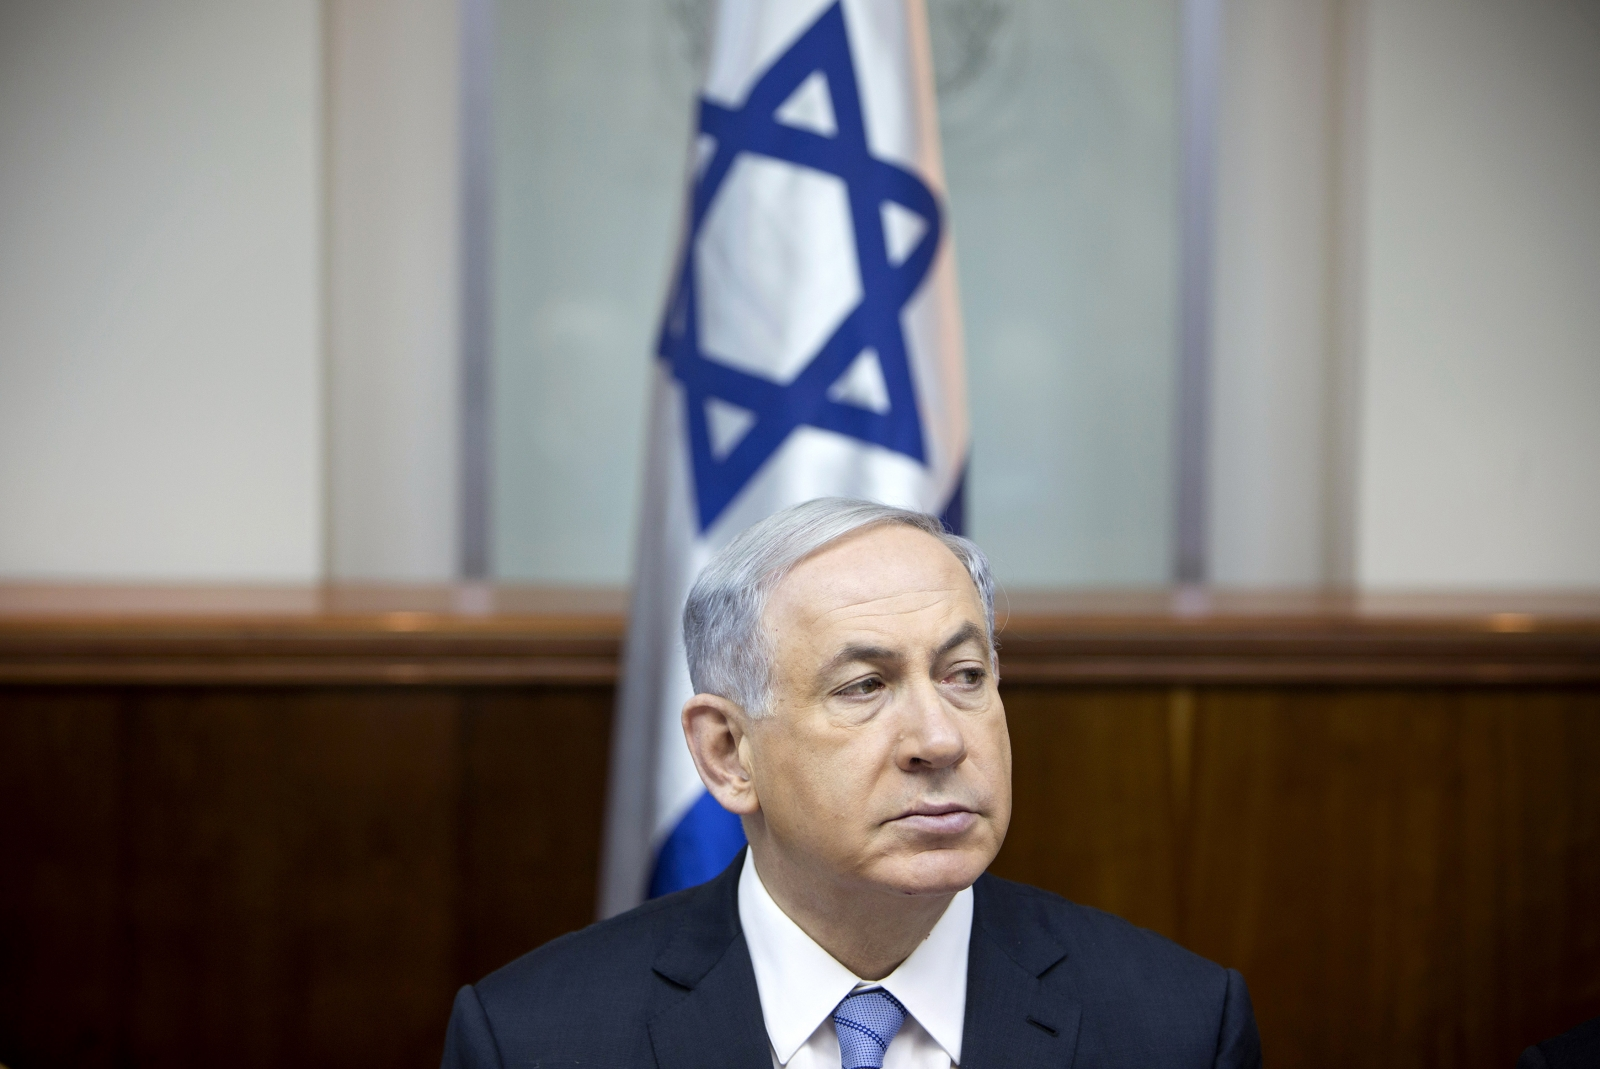 Israel's Prime Minister Benjamin Netanyahu has been accused of using the recent terror attacks for his own electoral campaign